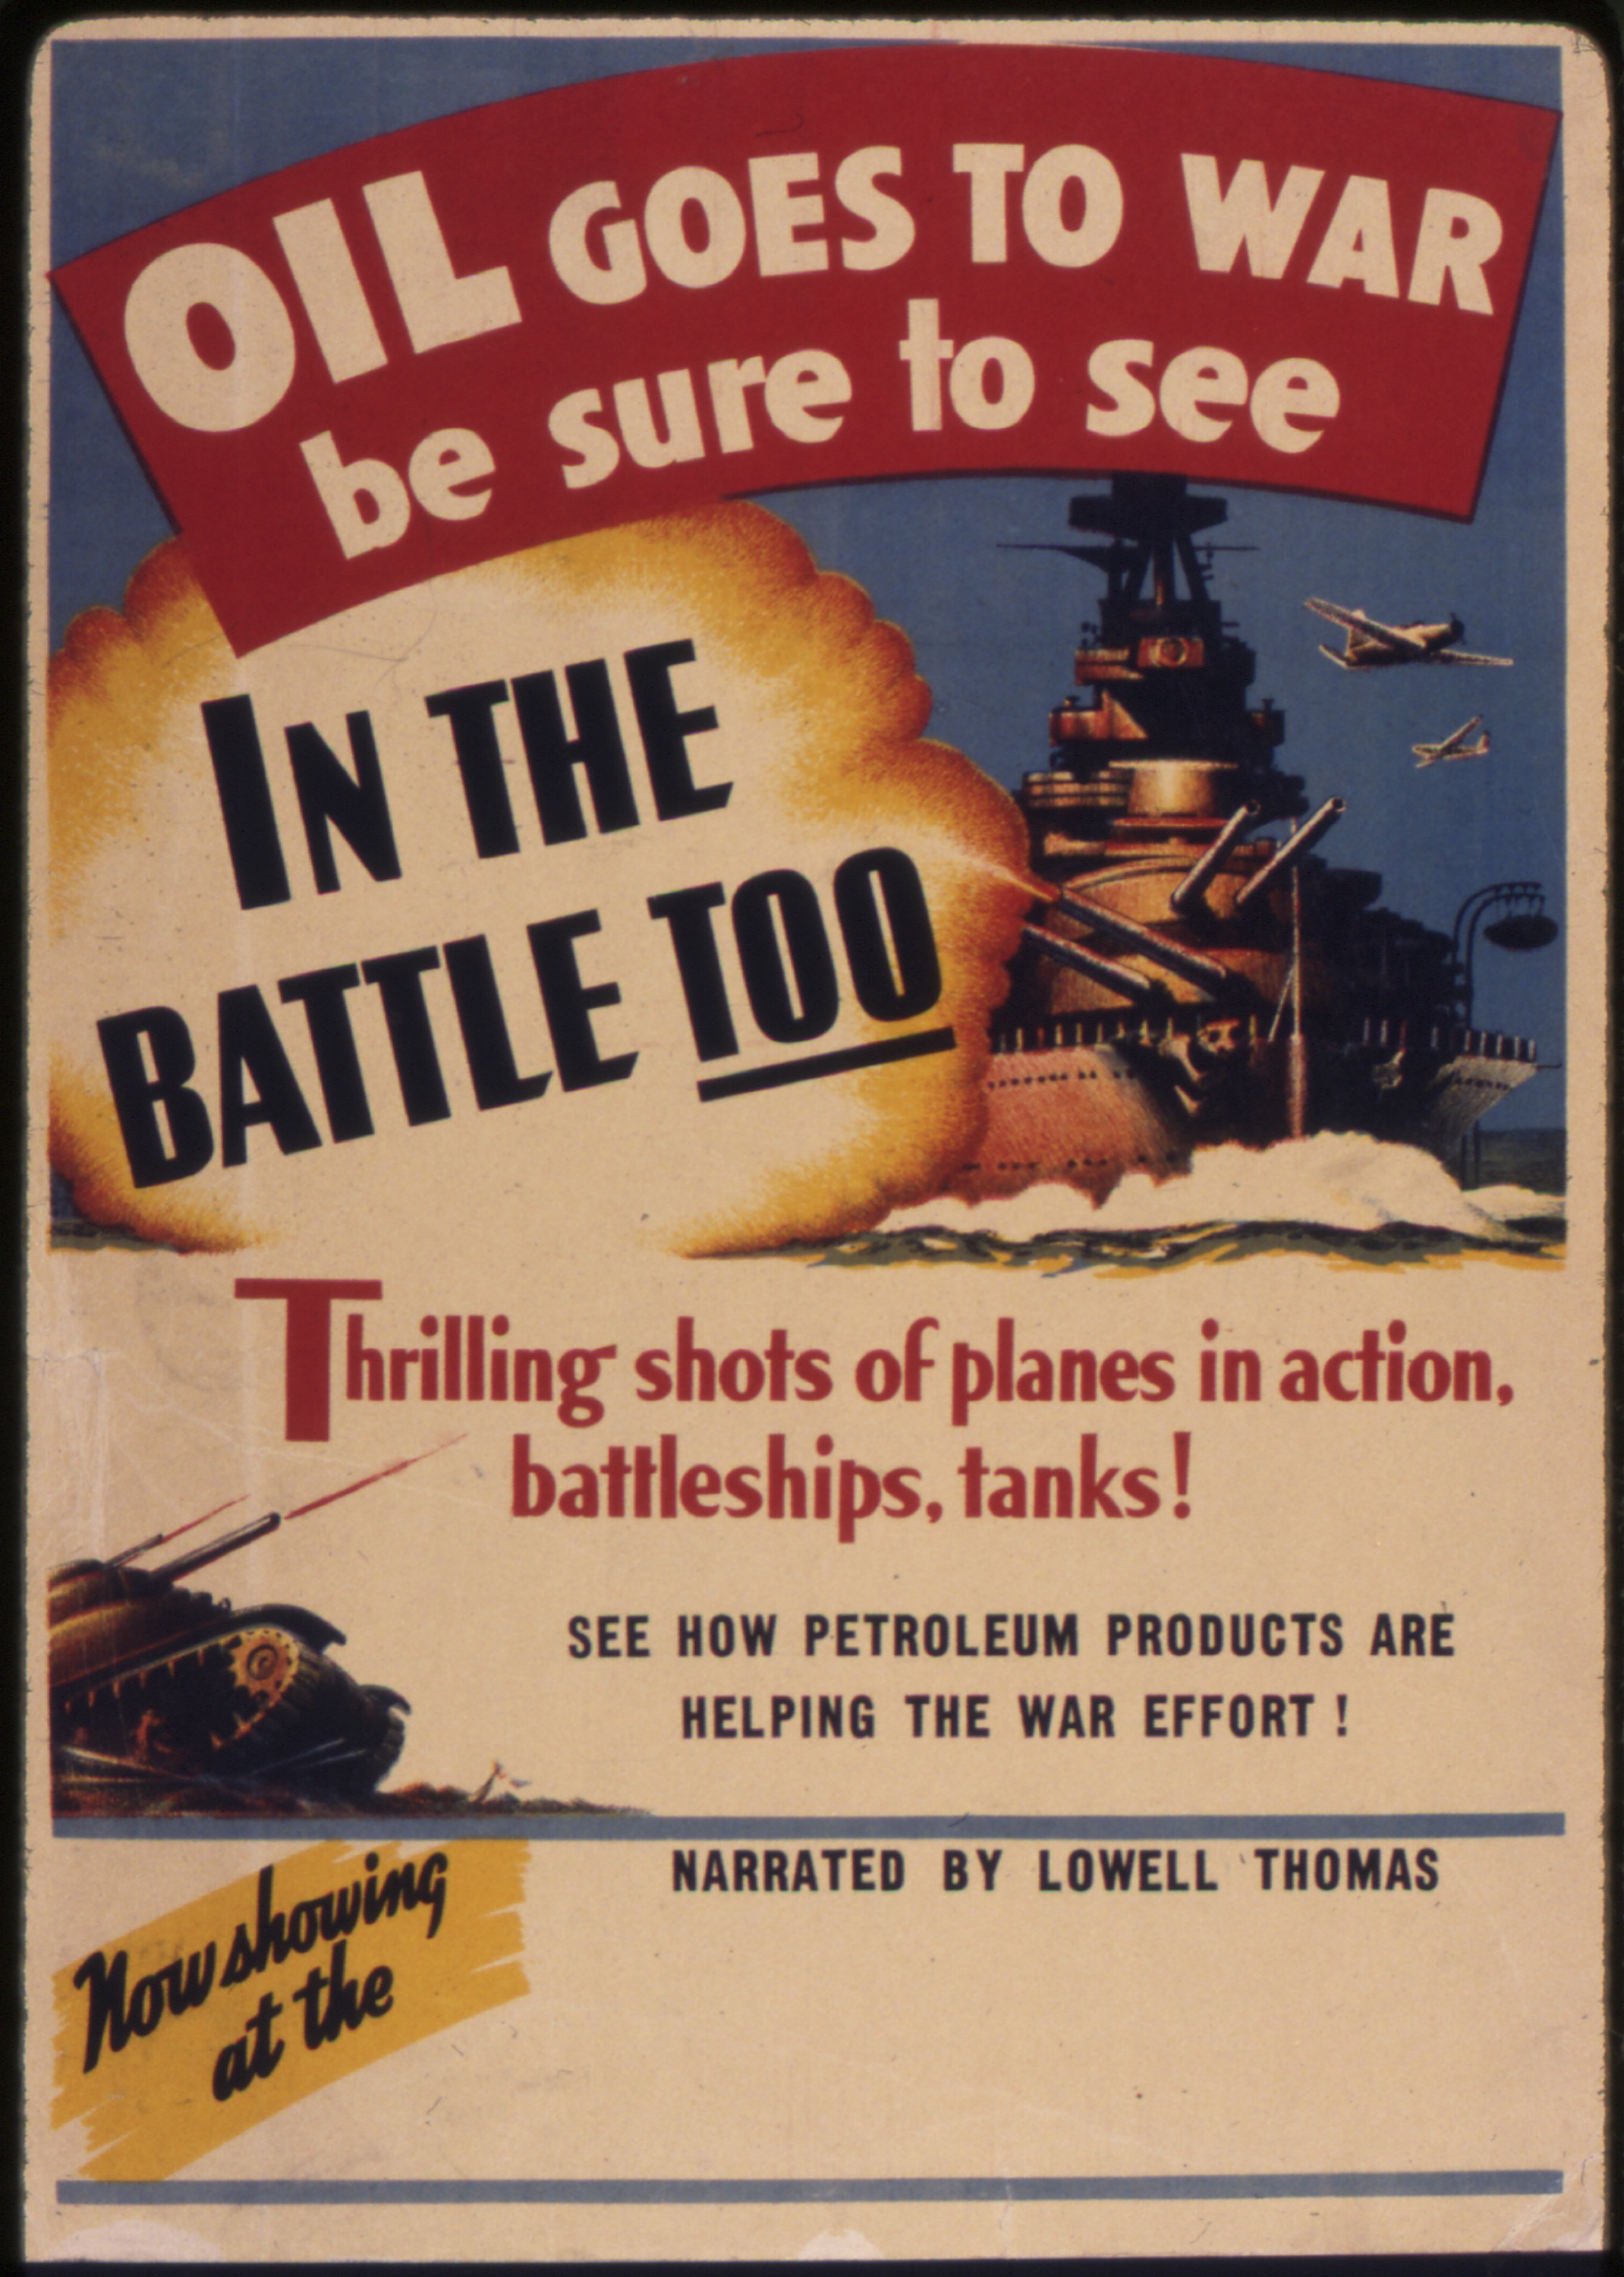 """""""Oil goes to war."""" National Archives Records Administration item 534852"""